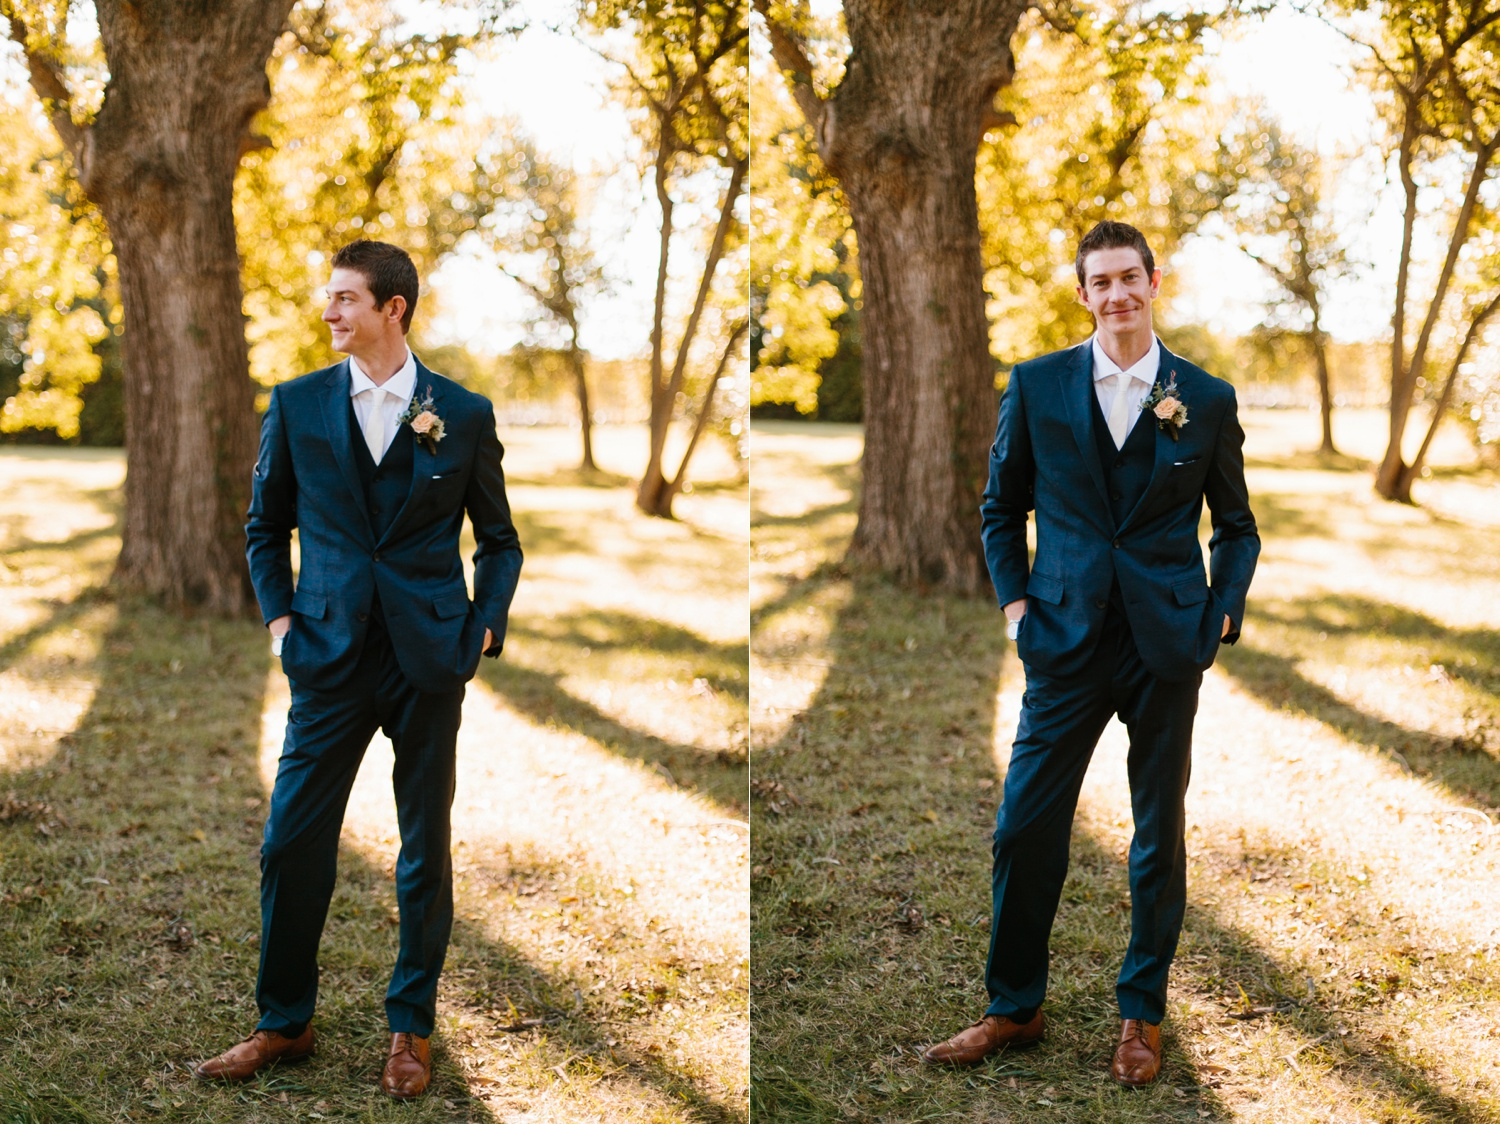 Erica + Henry | a bohemian inspired wedding at Chandlers Gardens in Salina, TX by North Texas Wedding Photographer Rachel Meagan Photography 049